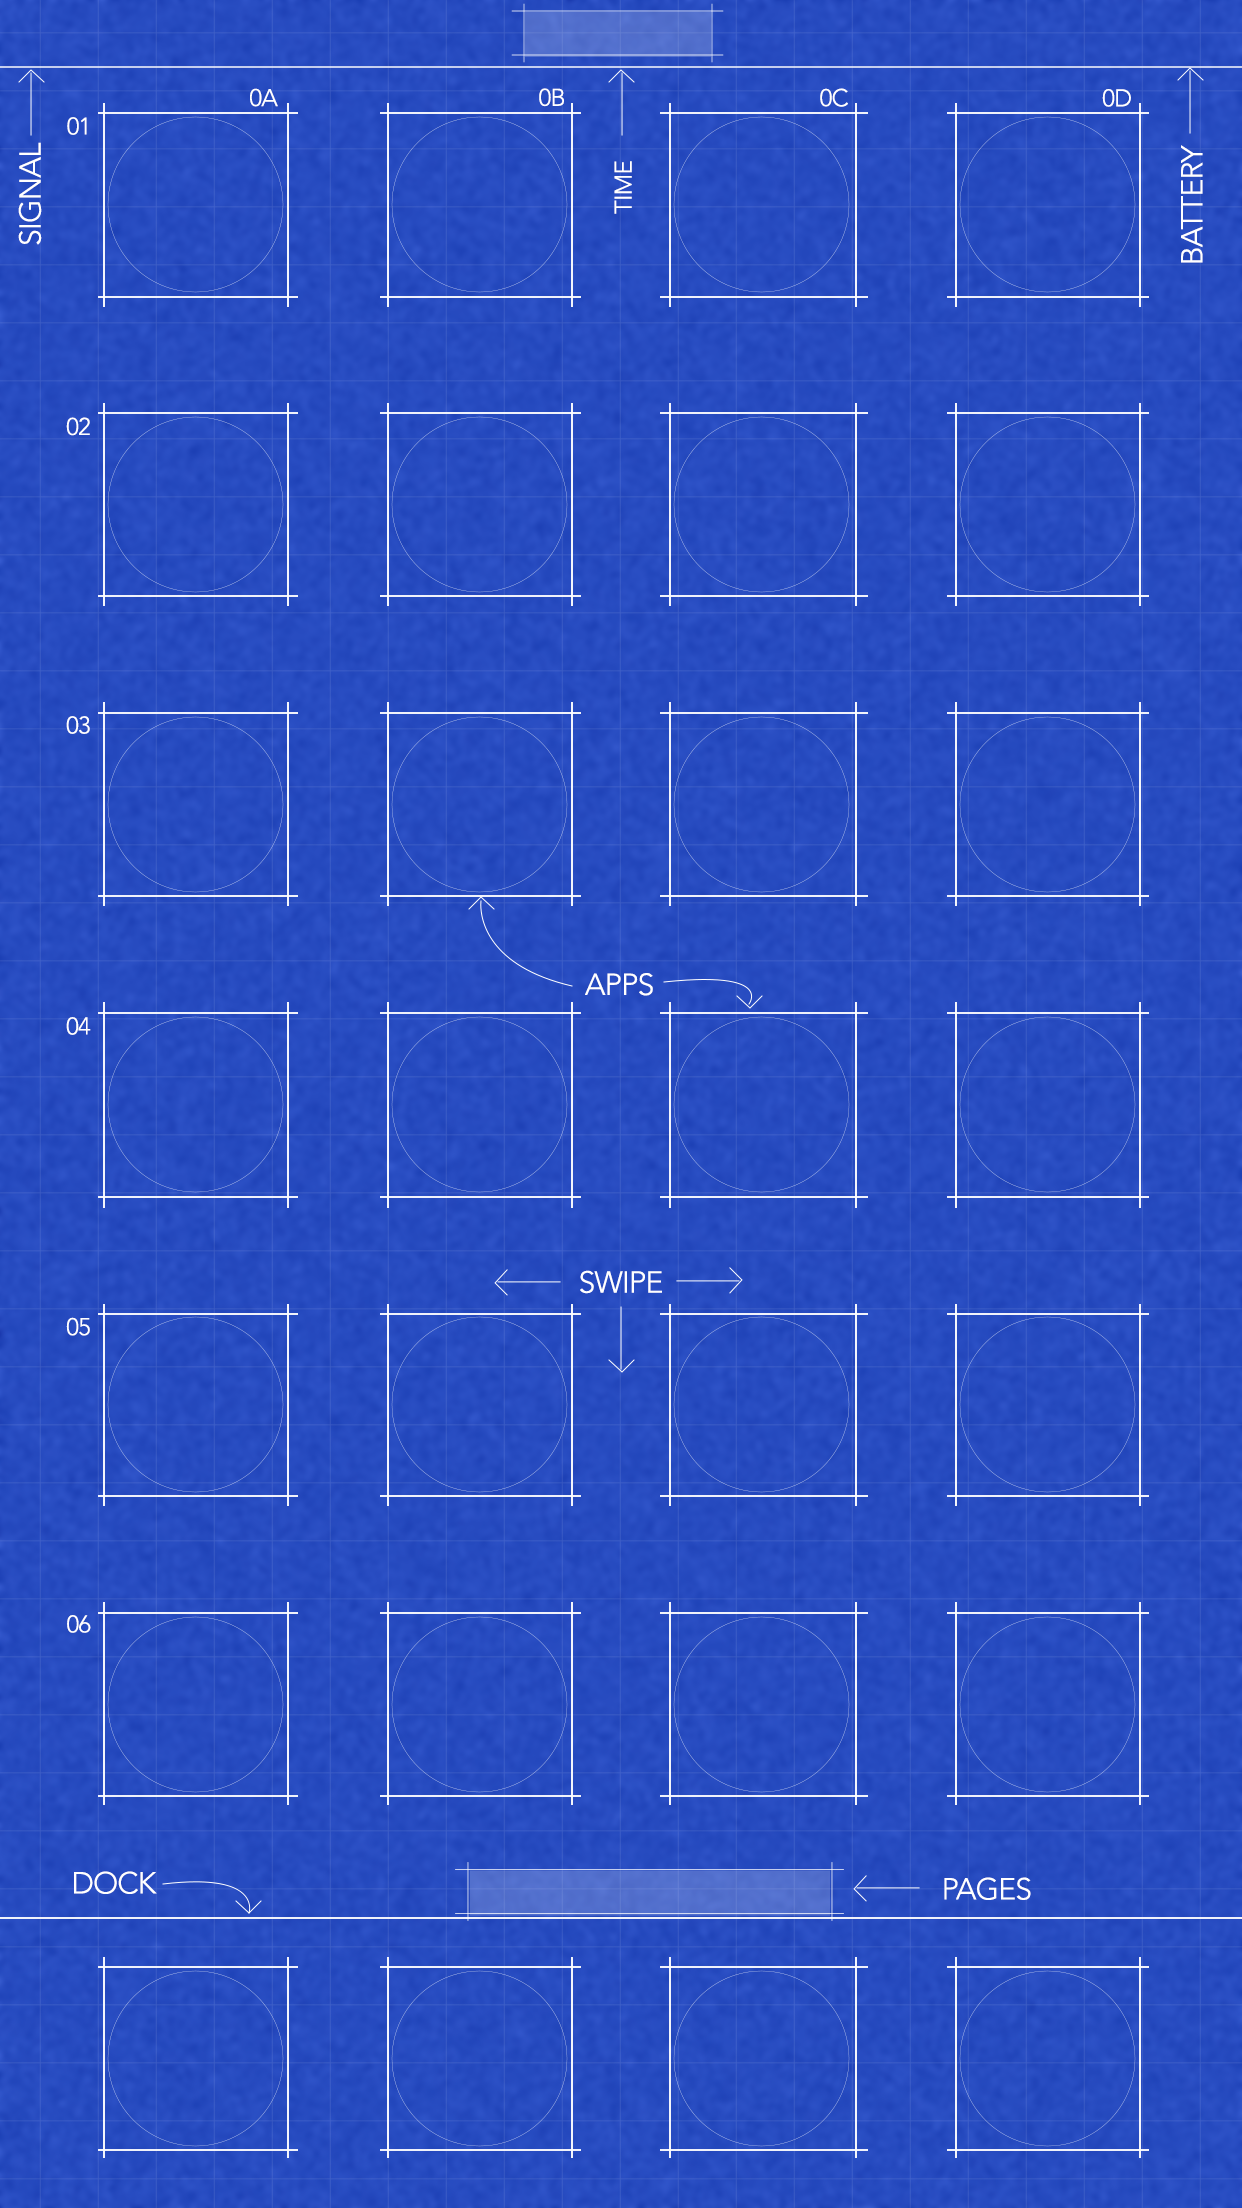 Download: 6/s/7/8 Plus blueprint wallpaper